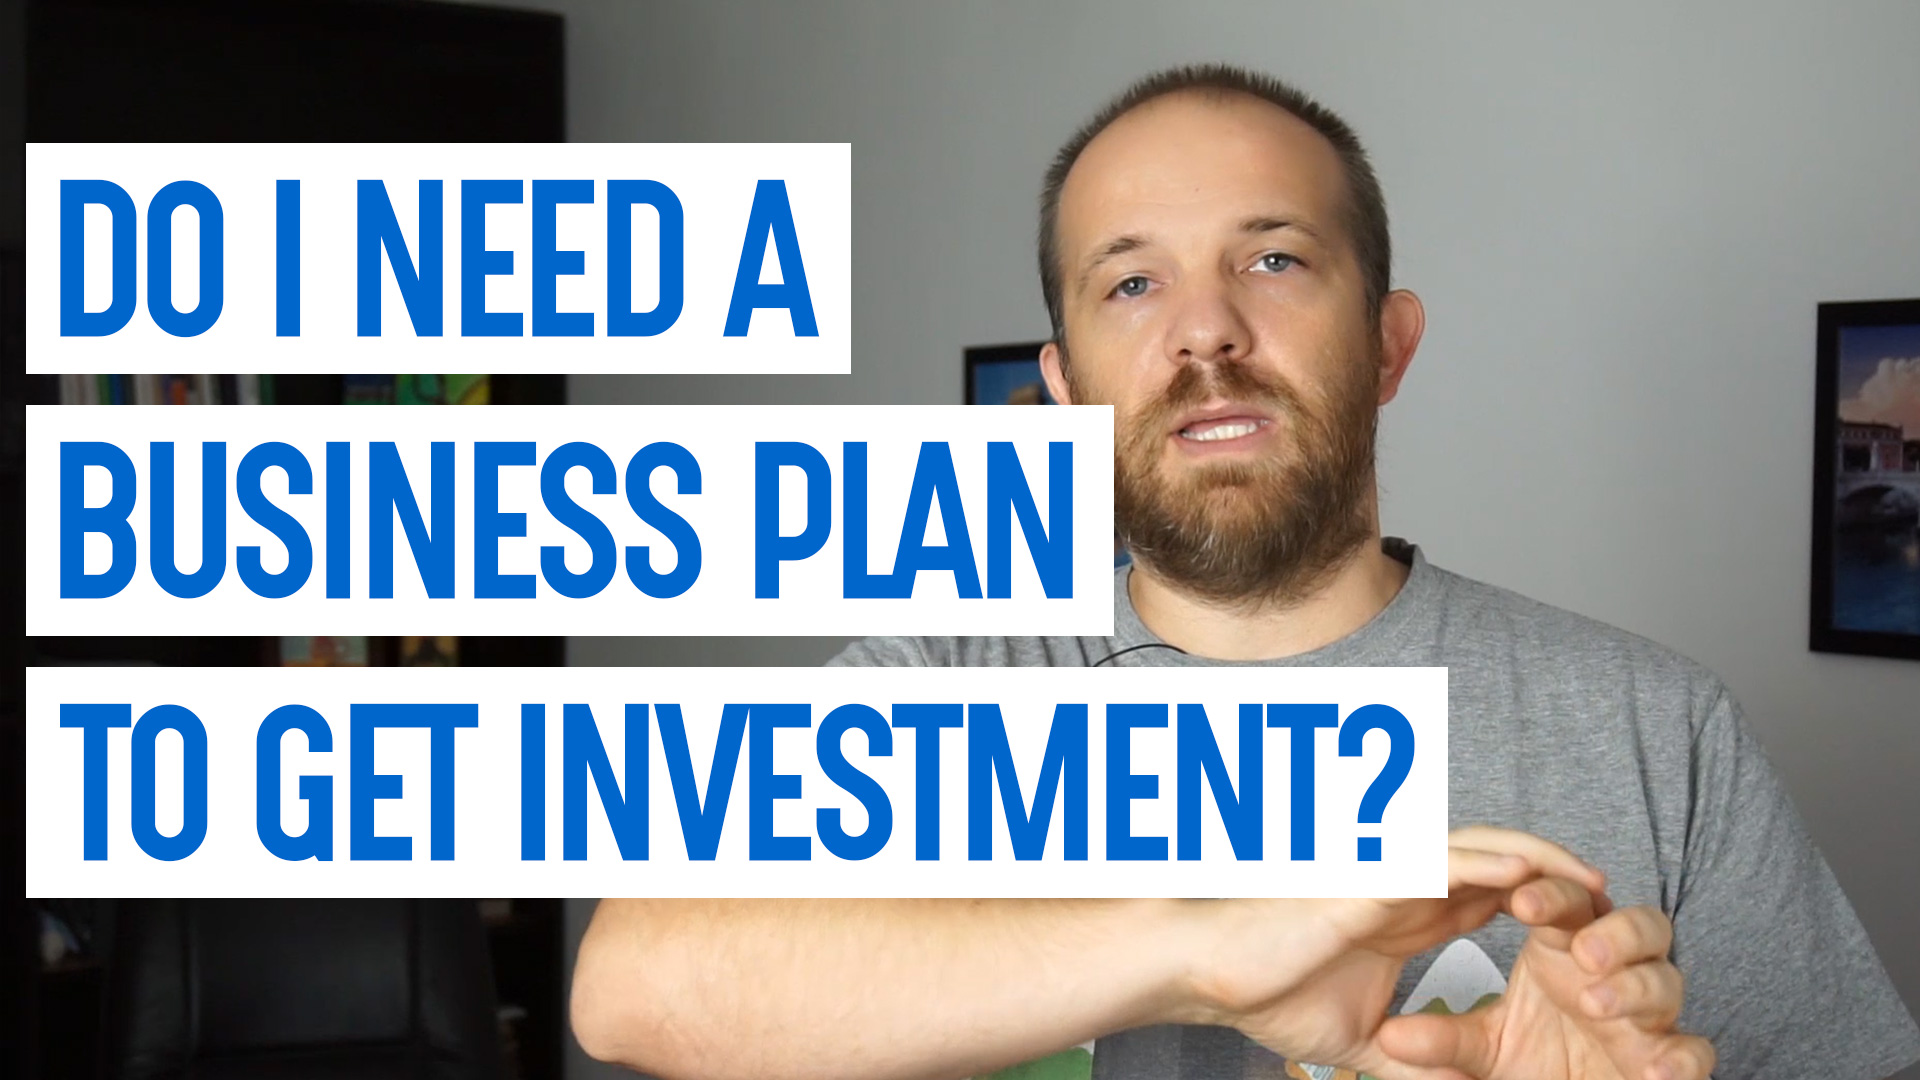 Do founders need a business plan